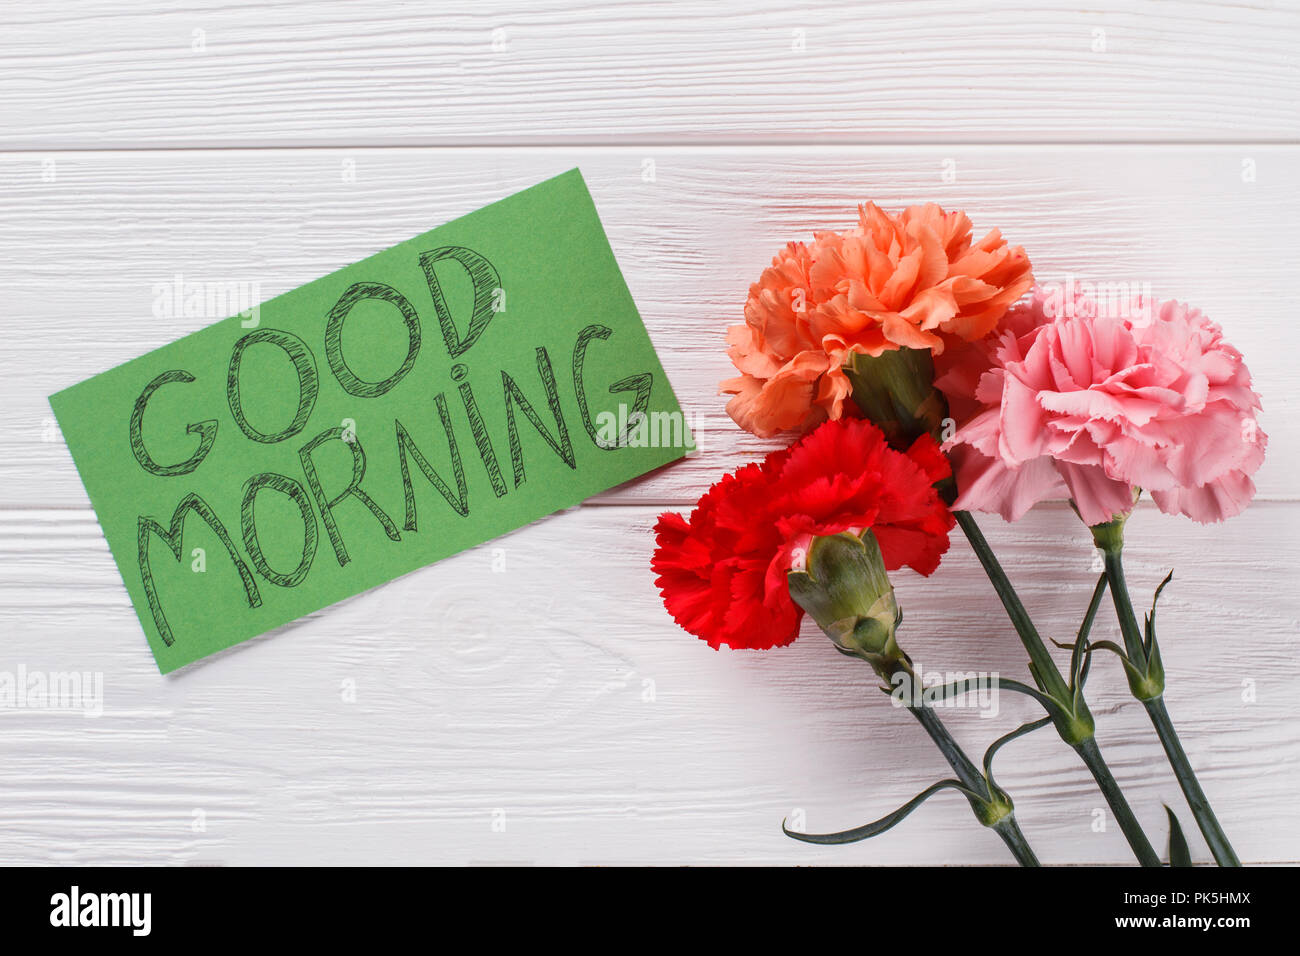 Good Morning Wish Note And Colorful Carnation Flowers White Wood